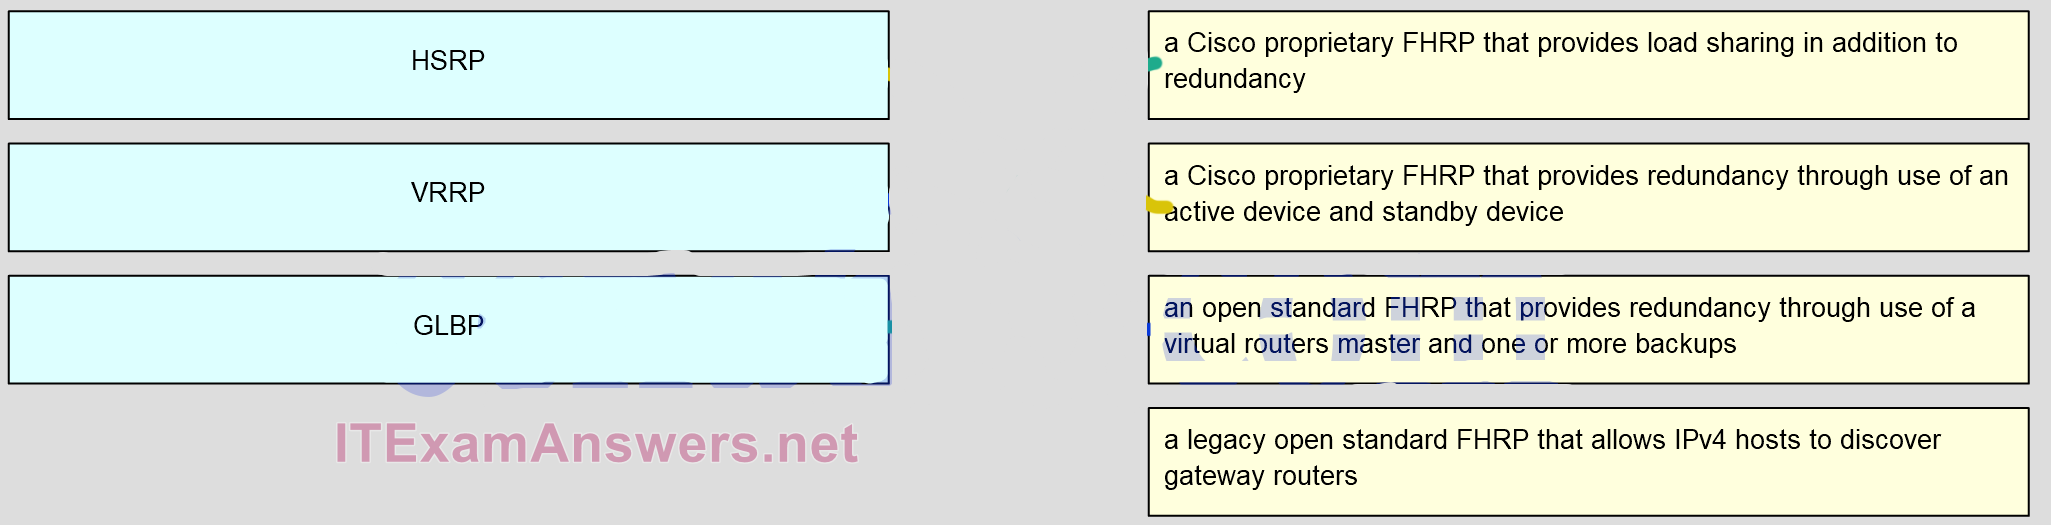 CCNA 4 Connecting Networks v6.0 - CCNA (ICND2) Cert Practice Exam Answers 21